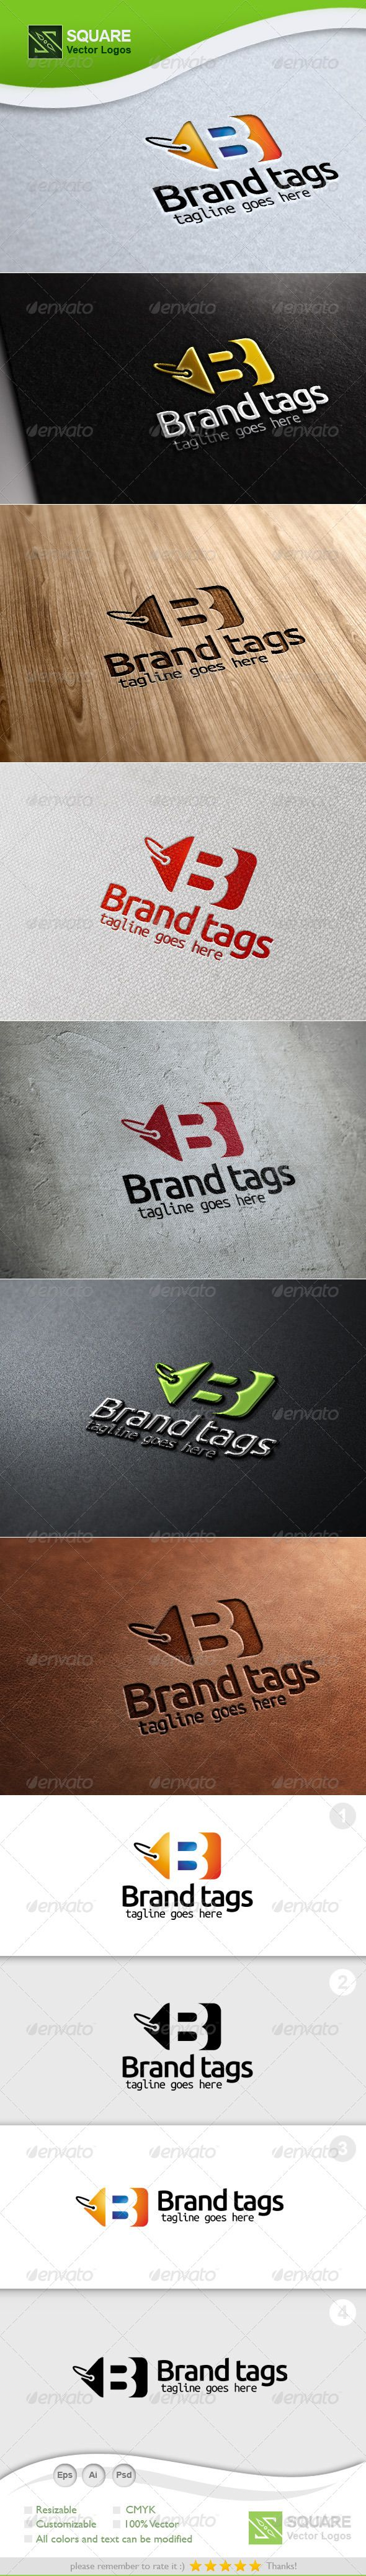 B Tag Vector - Logo Design Template Vector #logotype Download it here: http://graphicriver.net/item/b-tag-vector-logo-template/5453605?s_rank=1122?ref=nesto